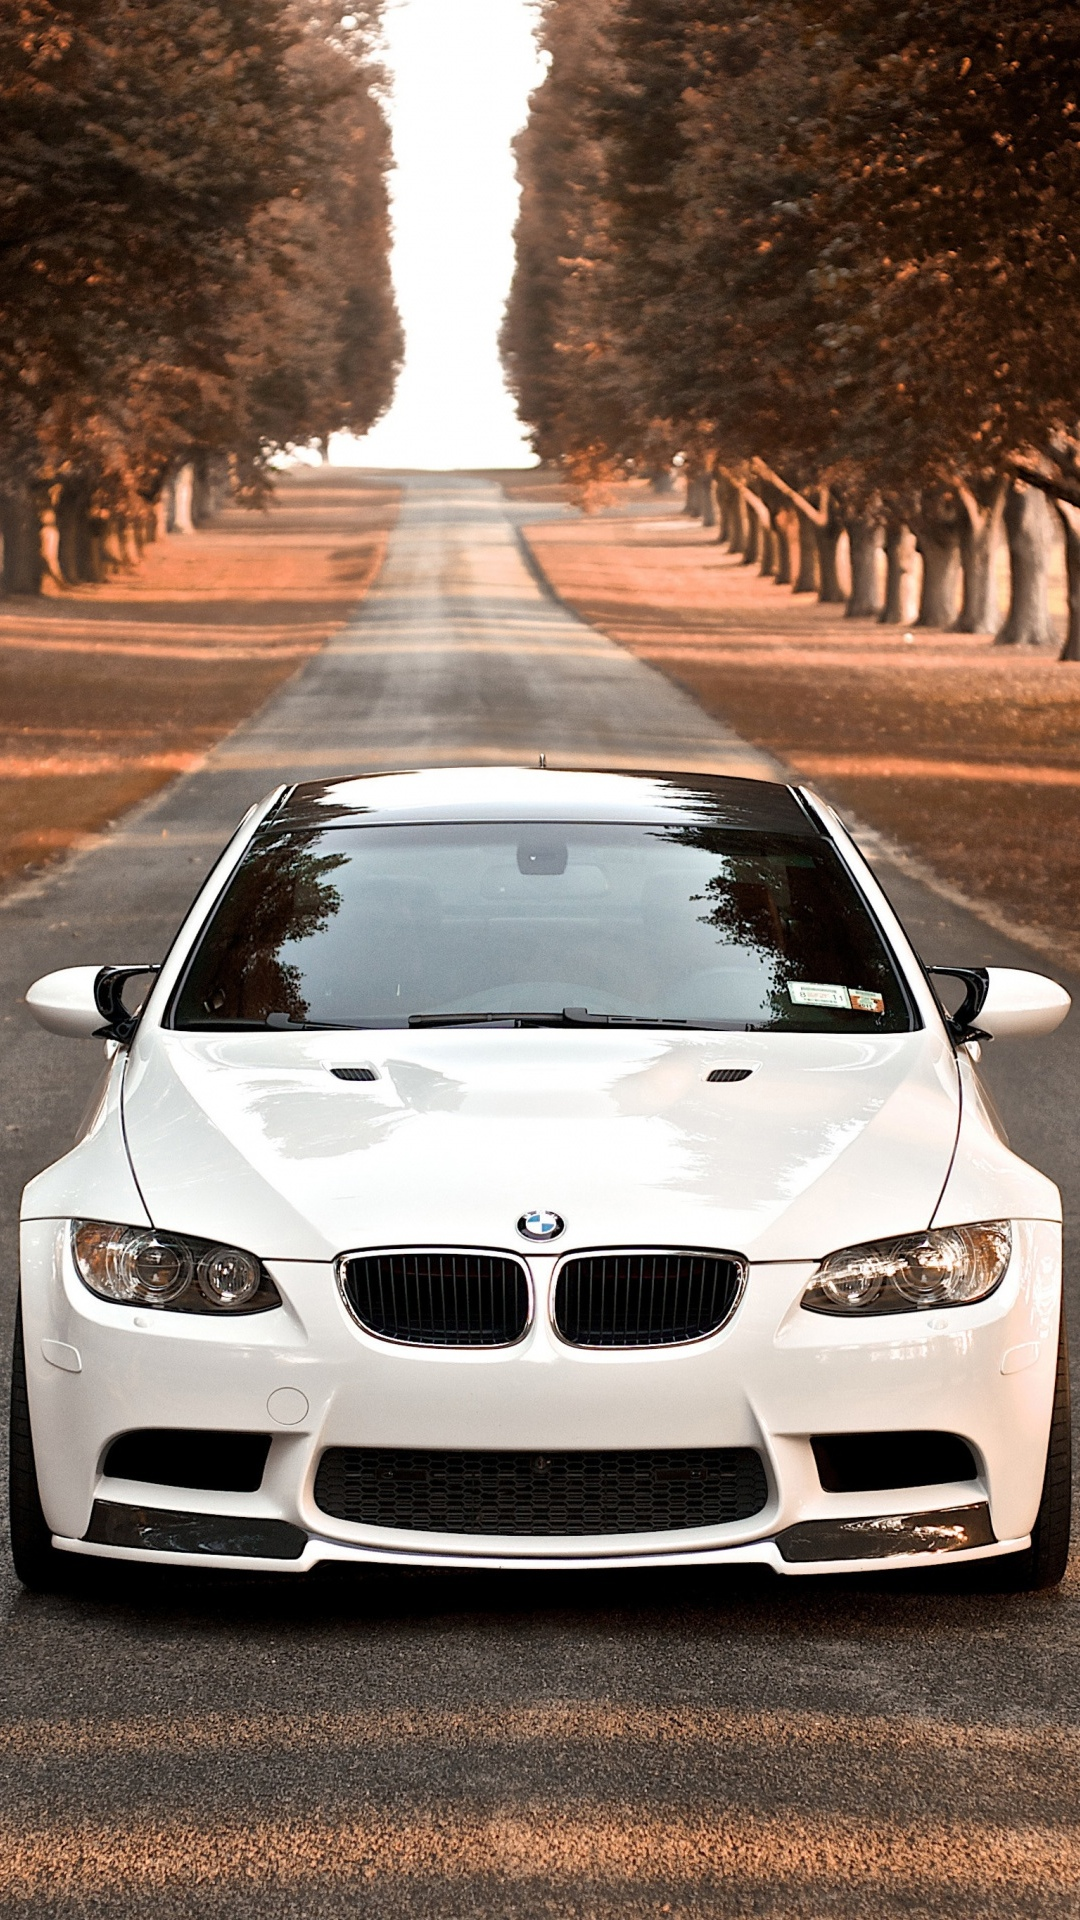 BMW M3 Branca - Best htc one wallpapers, free and easy to ...